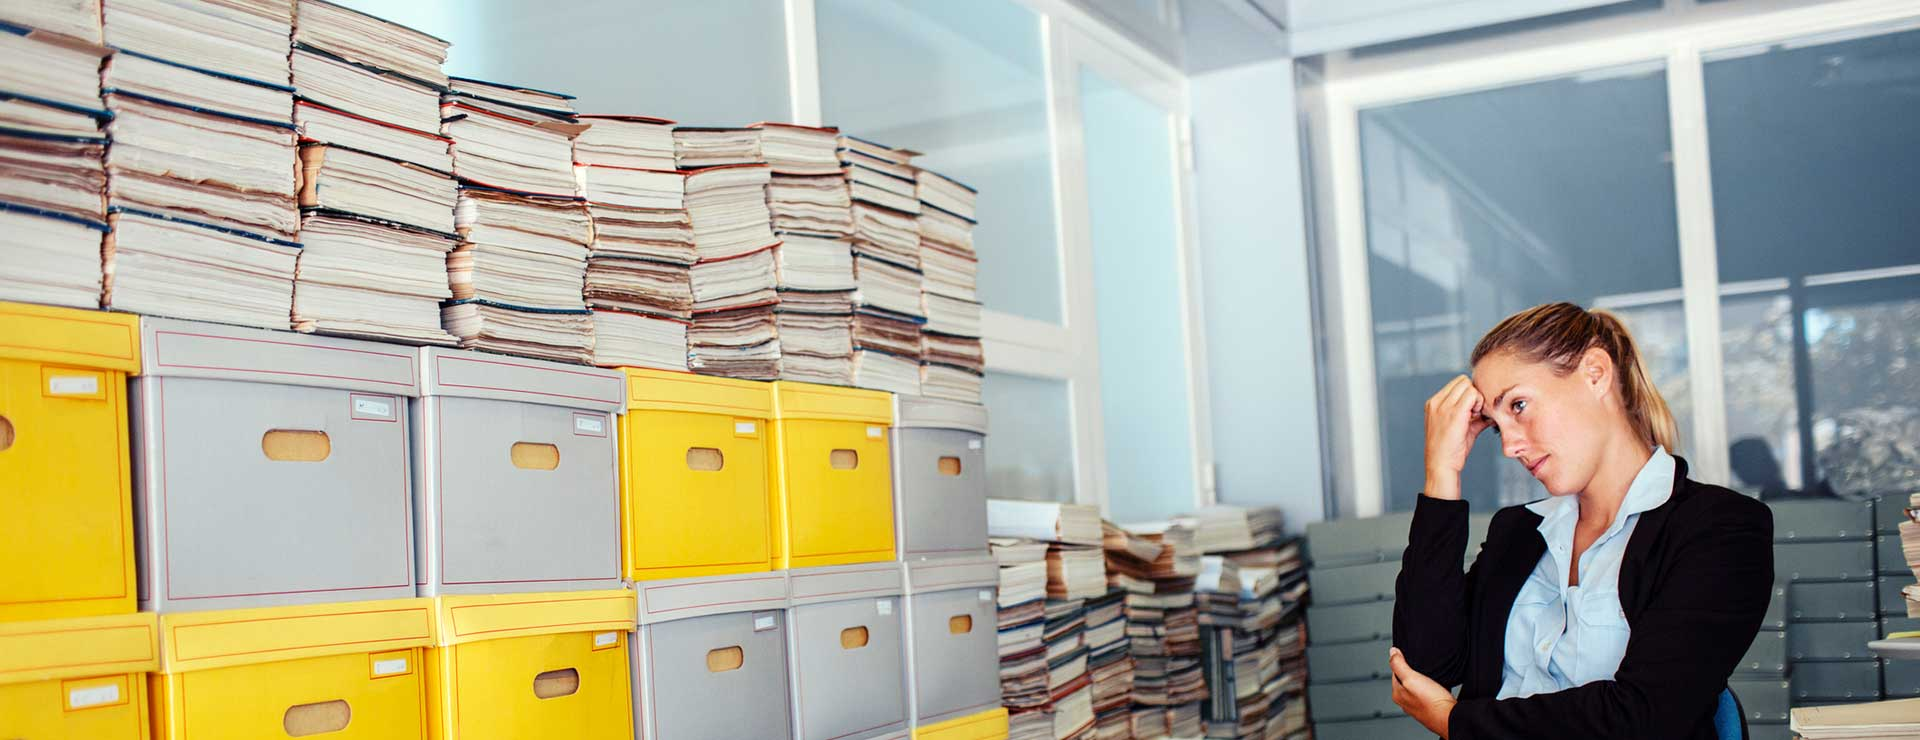 Woman stressed at work looking at a shelf full of files